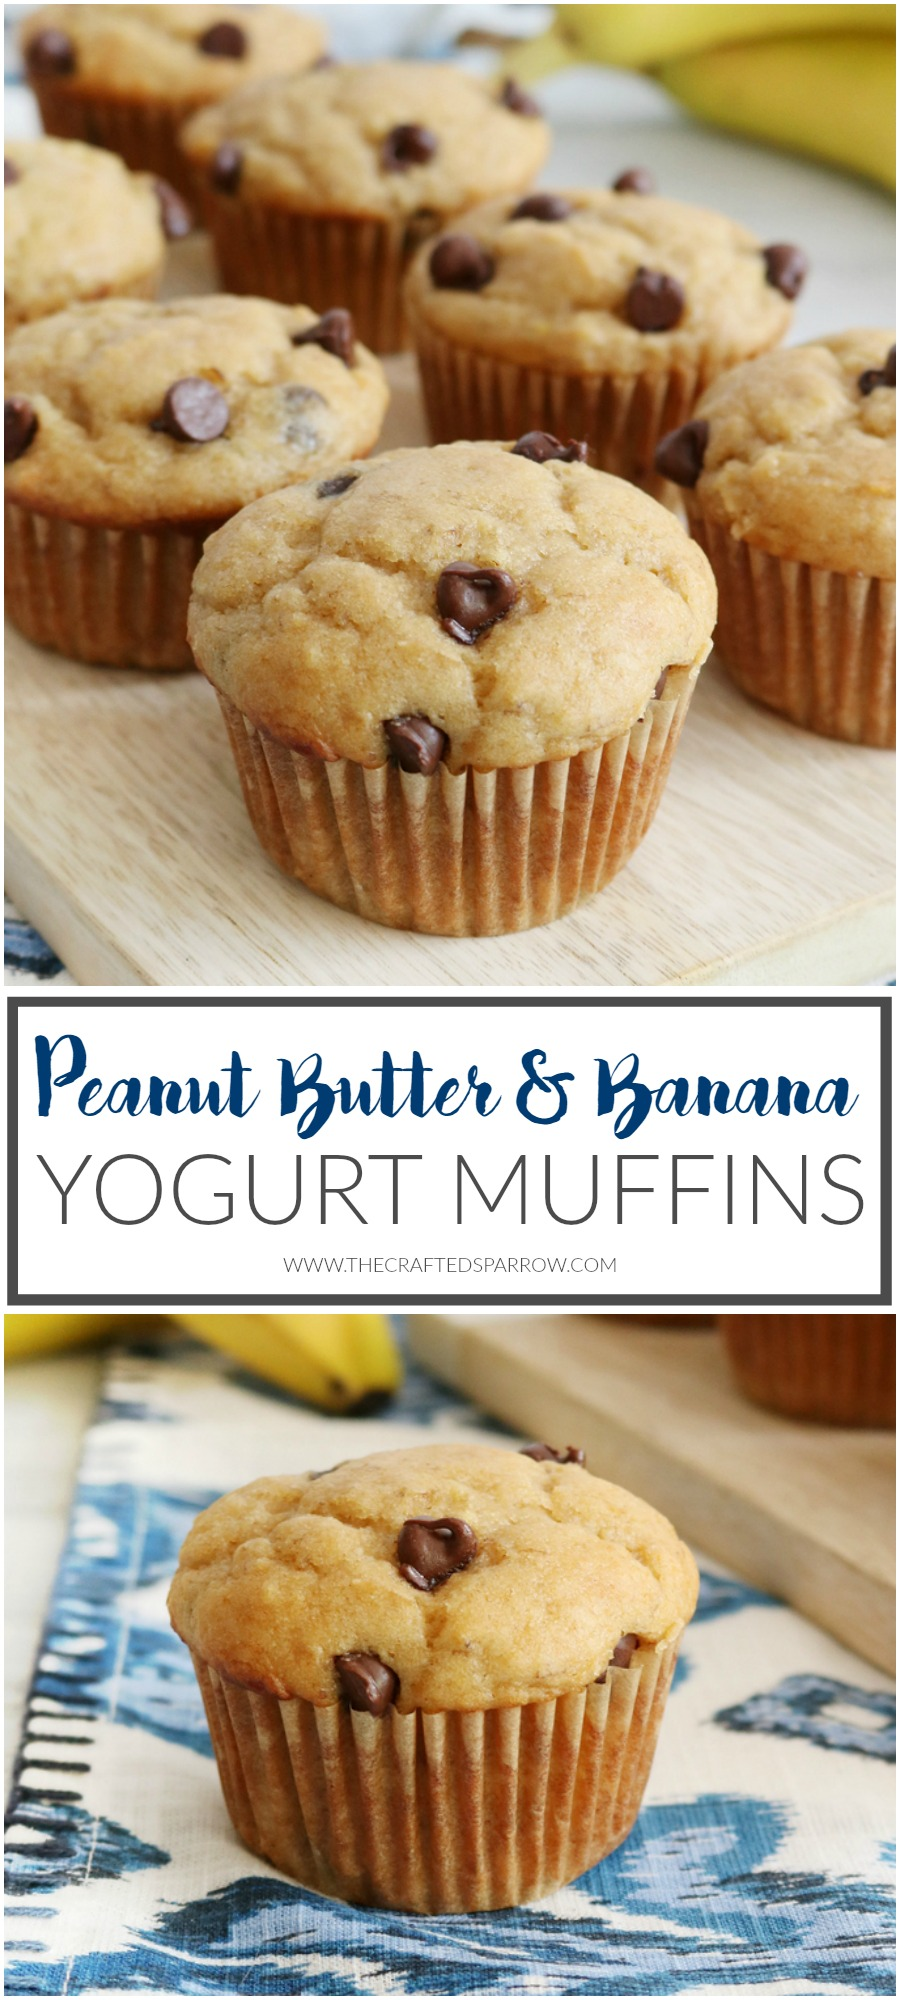 Peanut Butter Banana Yogurt Muffins